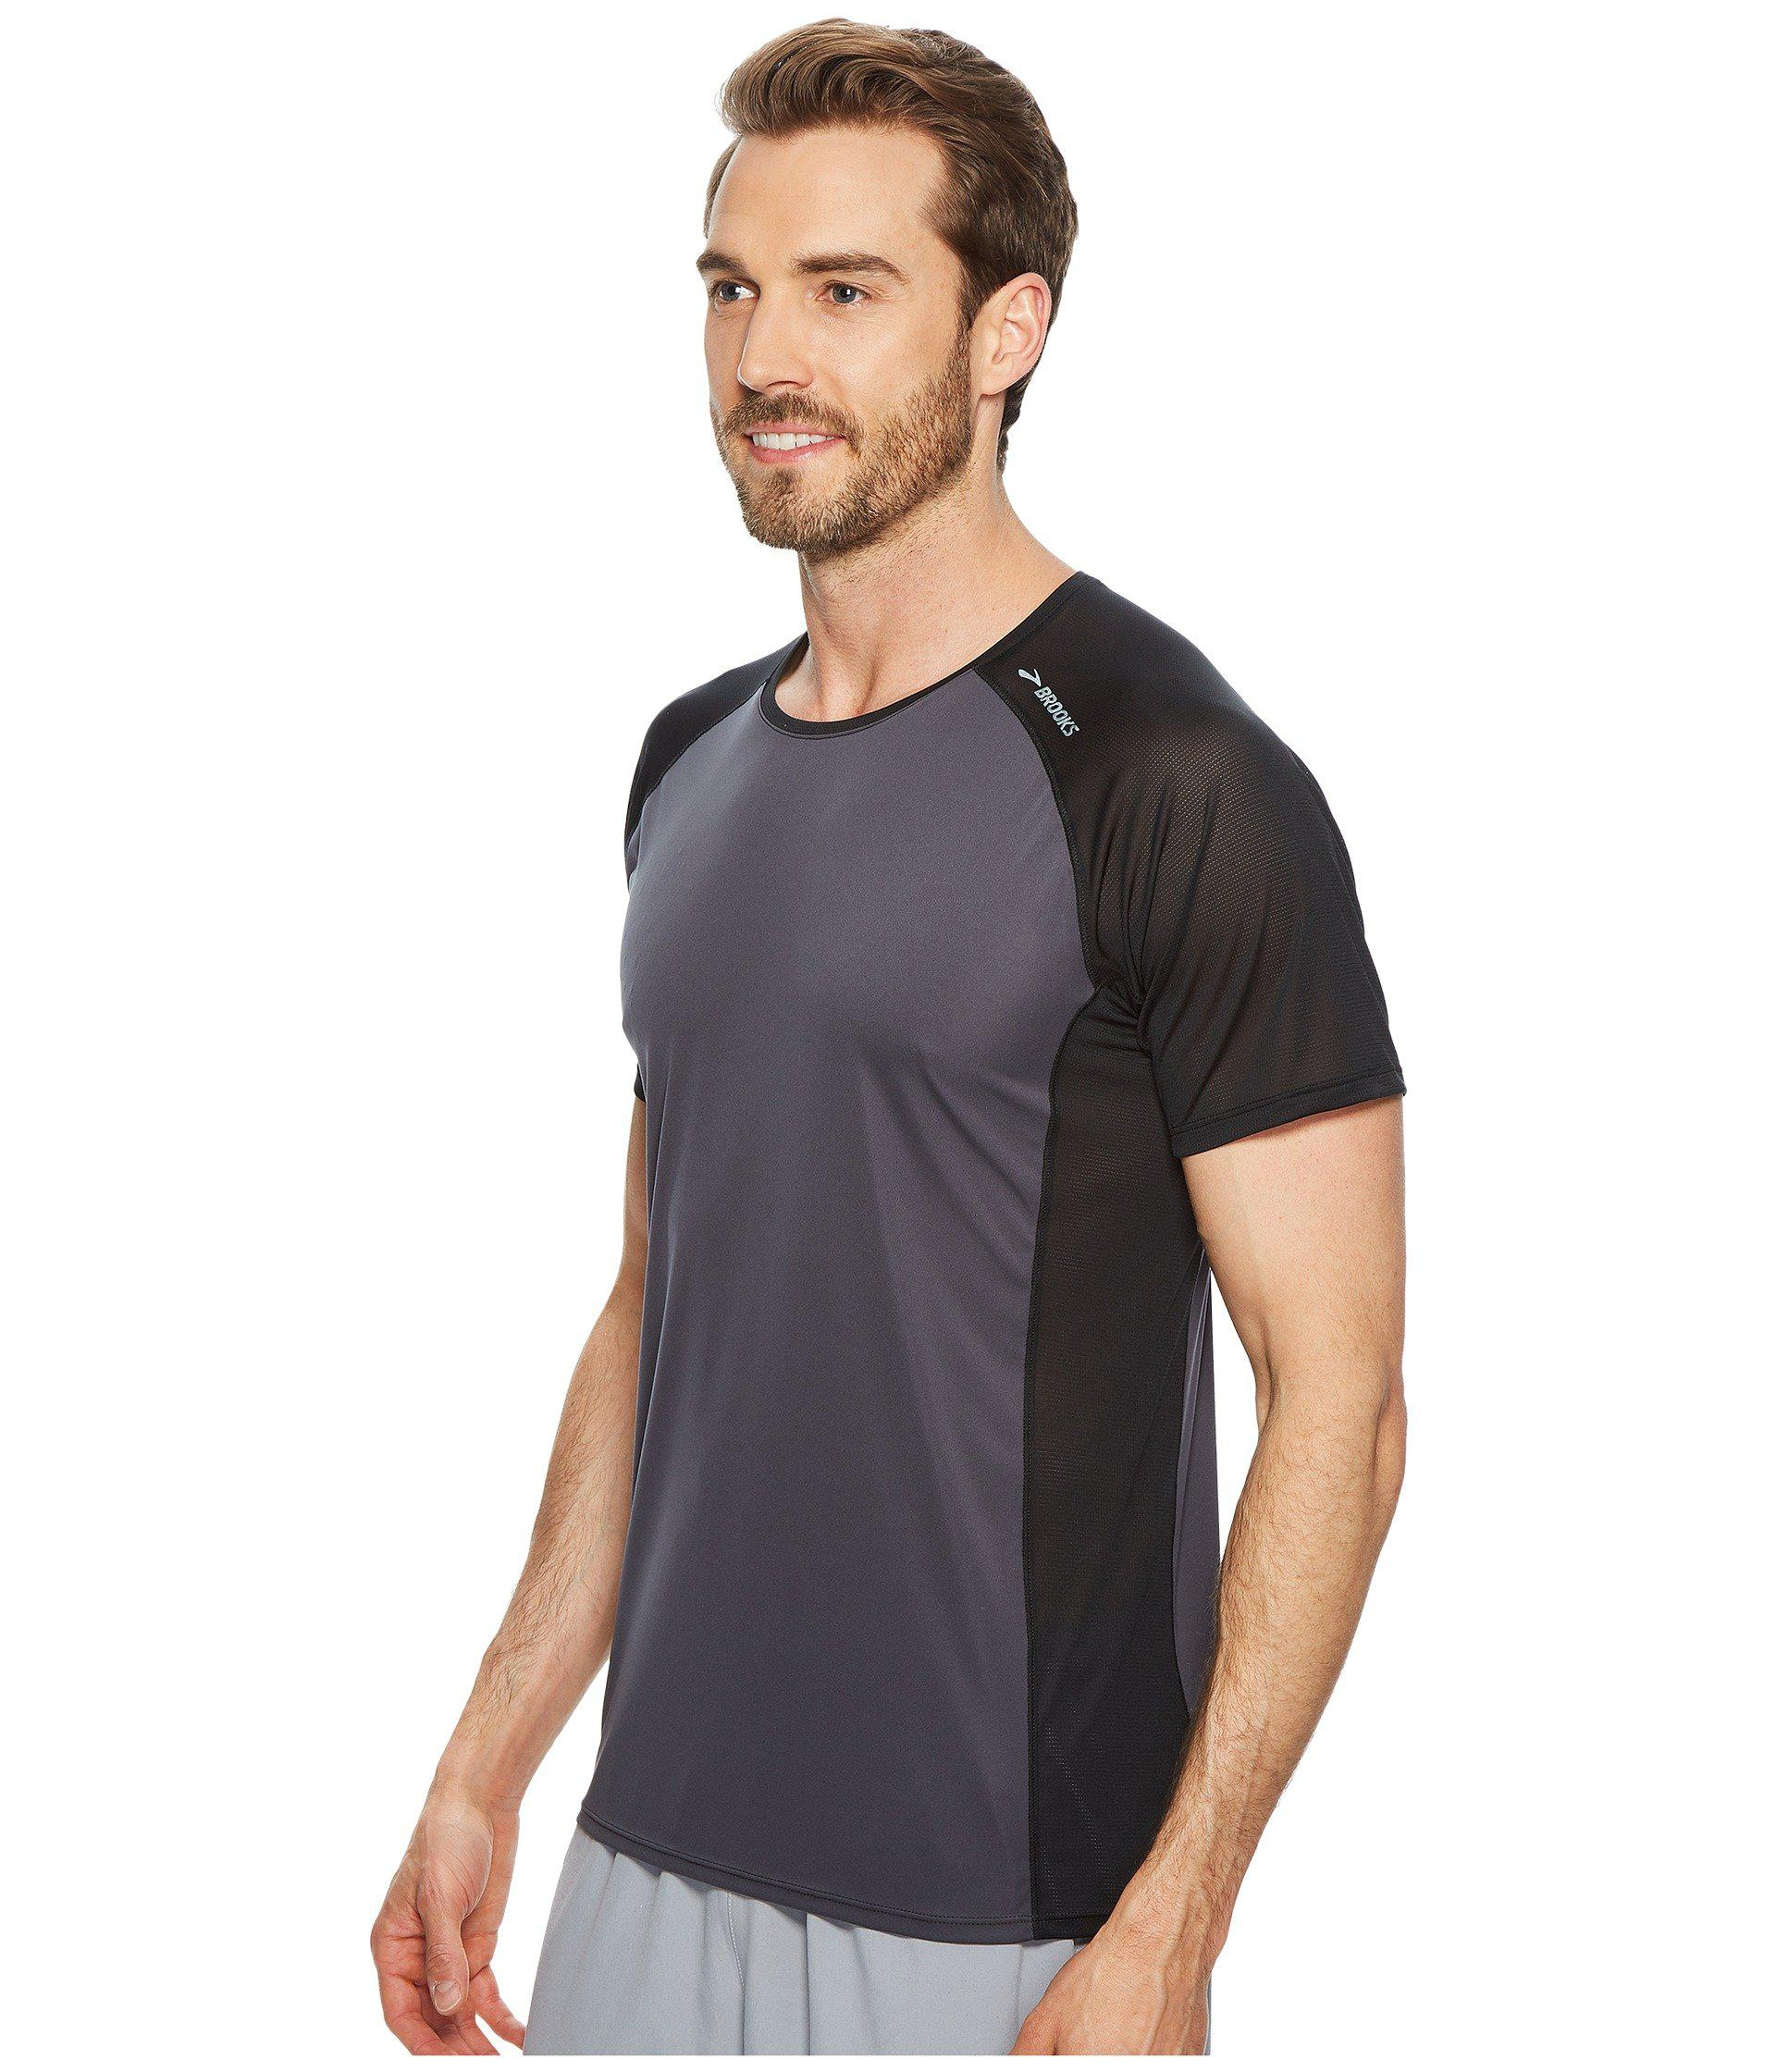 ea0e3f0e965c43 Lyst - Brooks Stealth Short Sleeve in Black for Men - Save 10%